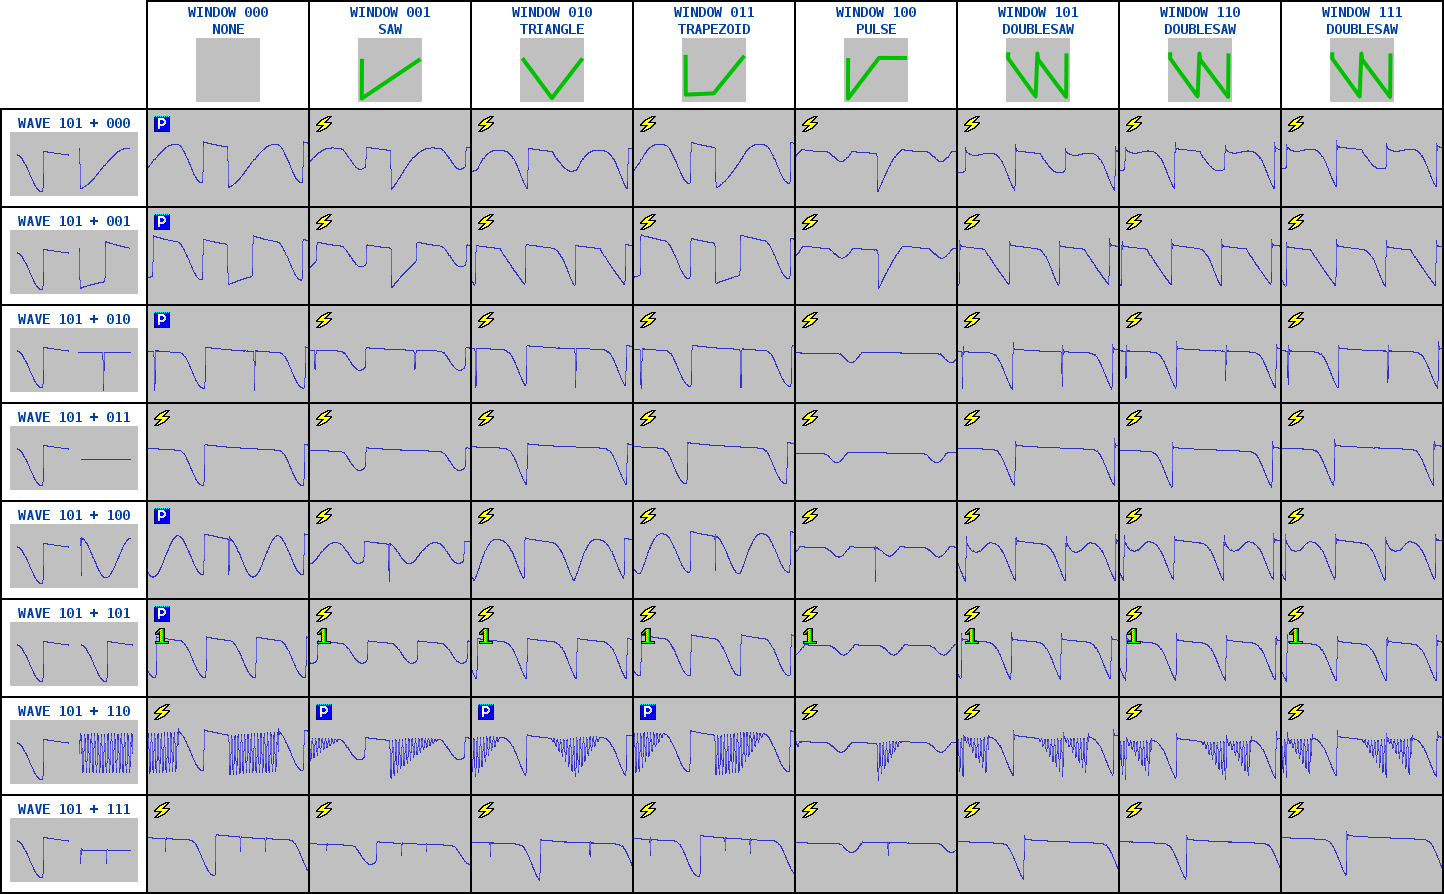 A table of WAVE 101, combined with every other WAVE, and passed through every WINDOW function